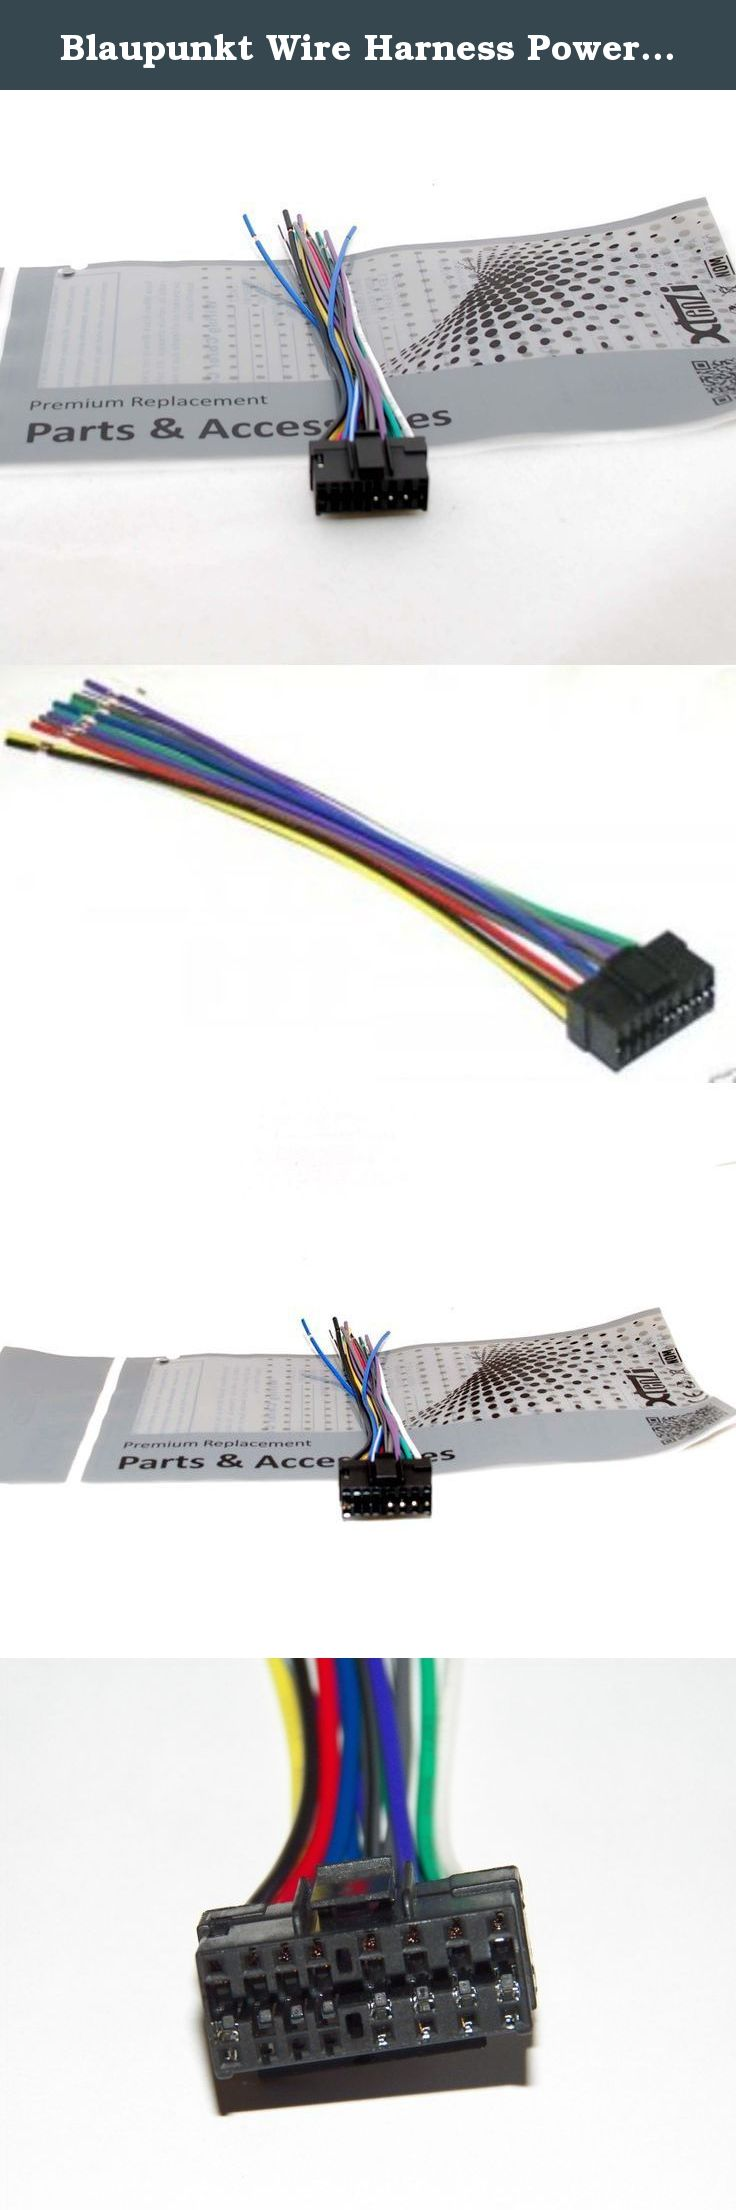 f247d6e433801023871927455bacbf7a blaupunkt wire harness power plug cd mp3 dvd car stereo head unit Power Acoustik 710 at soozxer.org